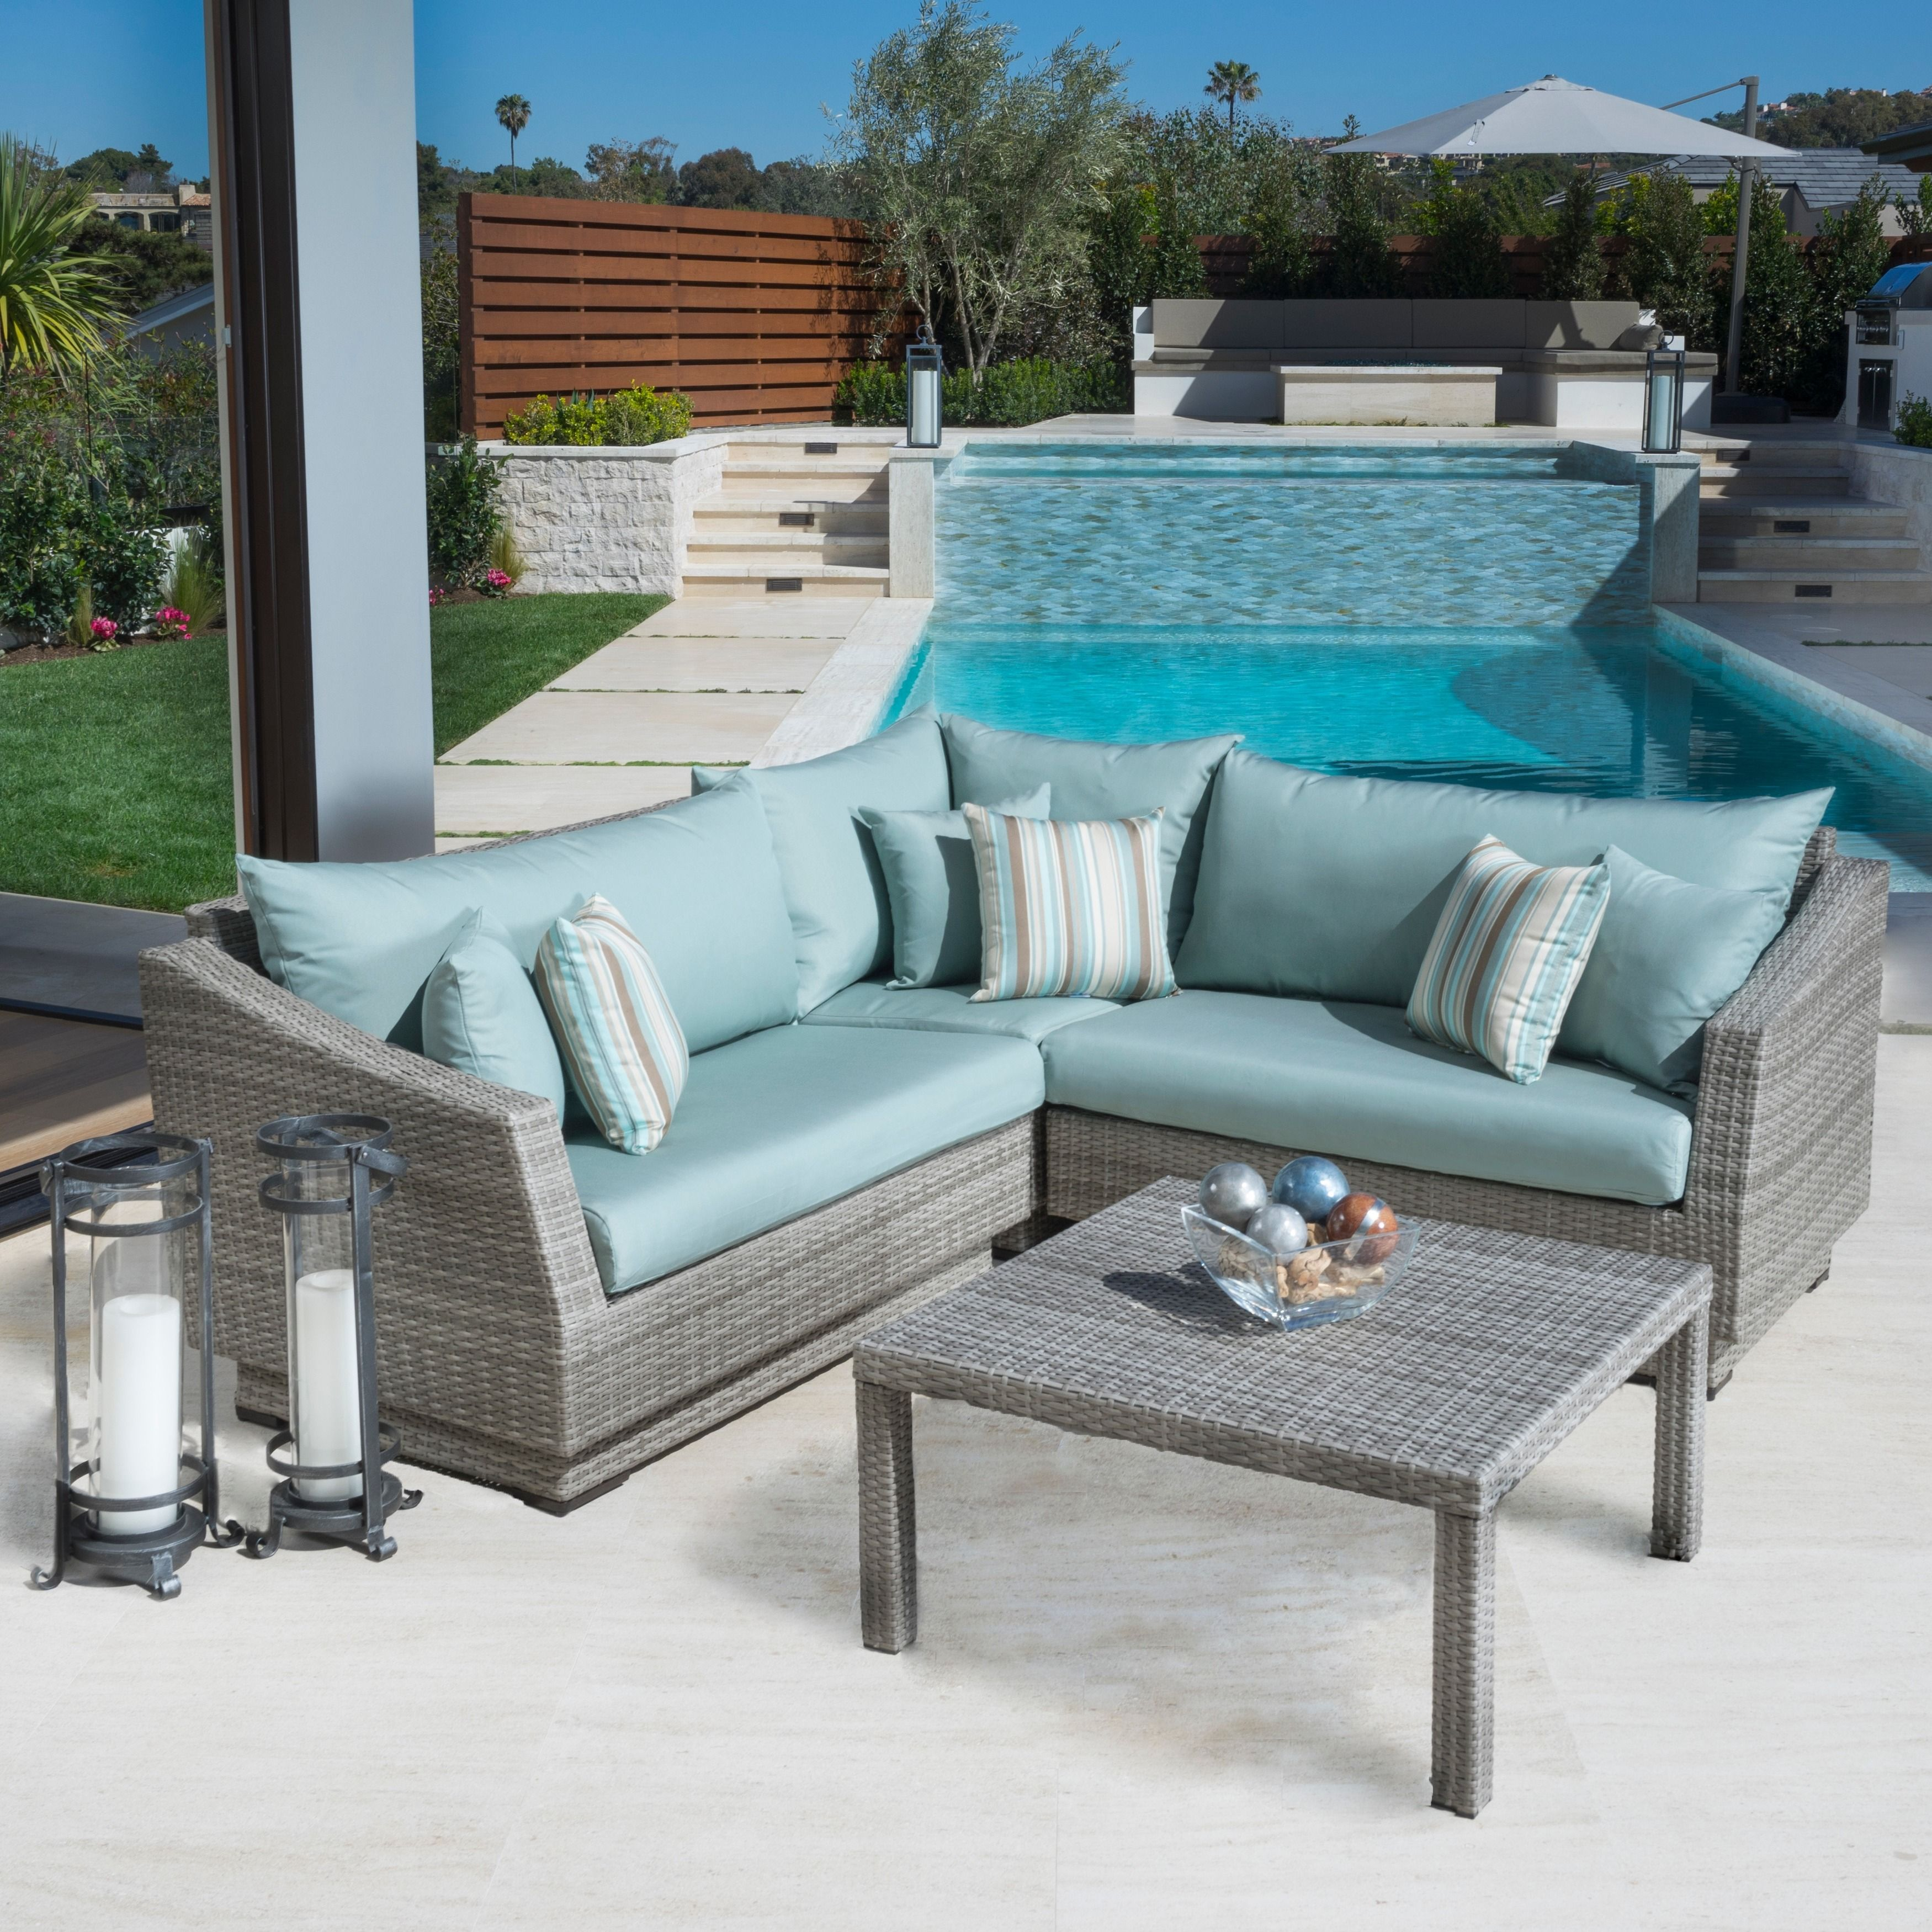 The modular ponents on these outdoor sectionals are created so